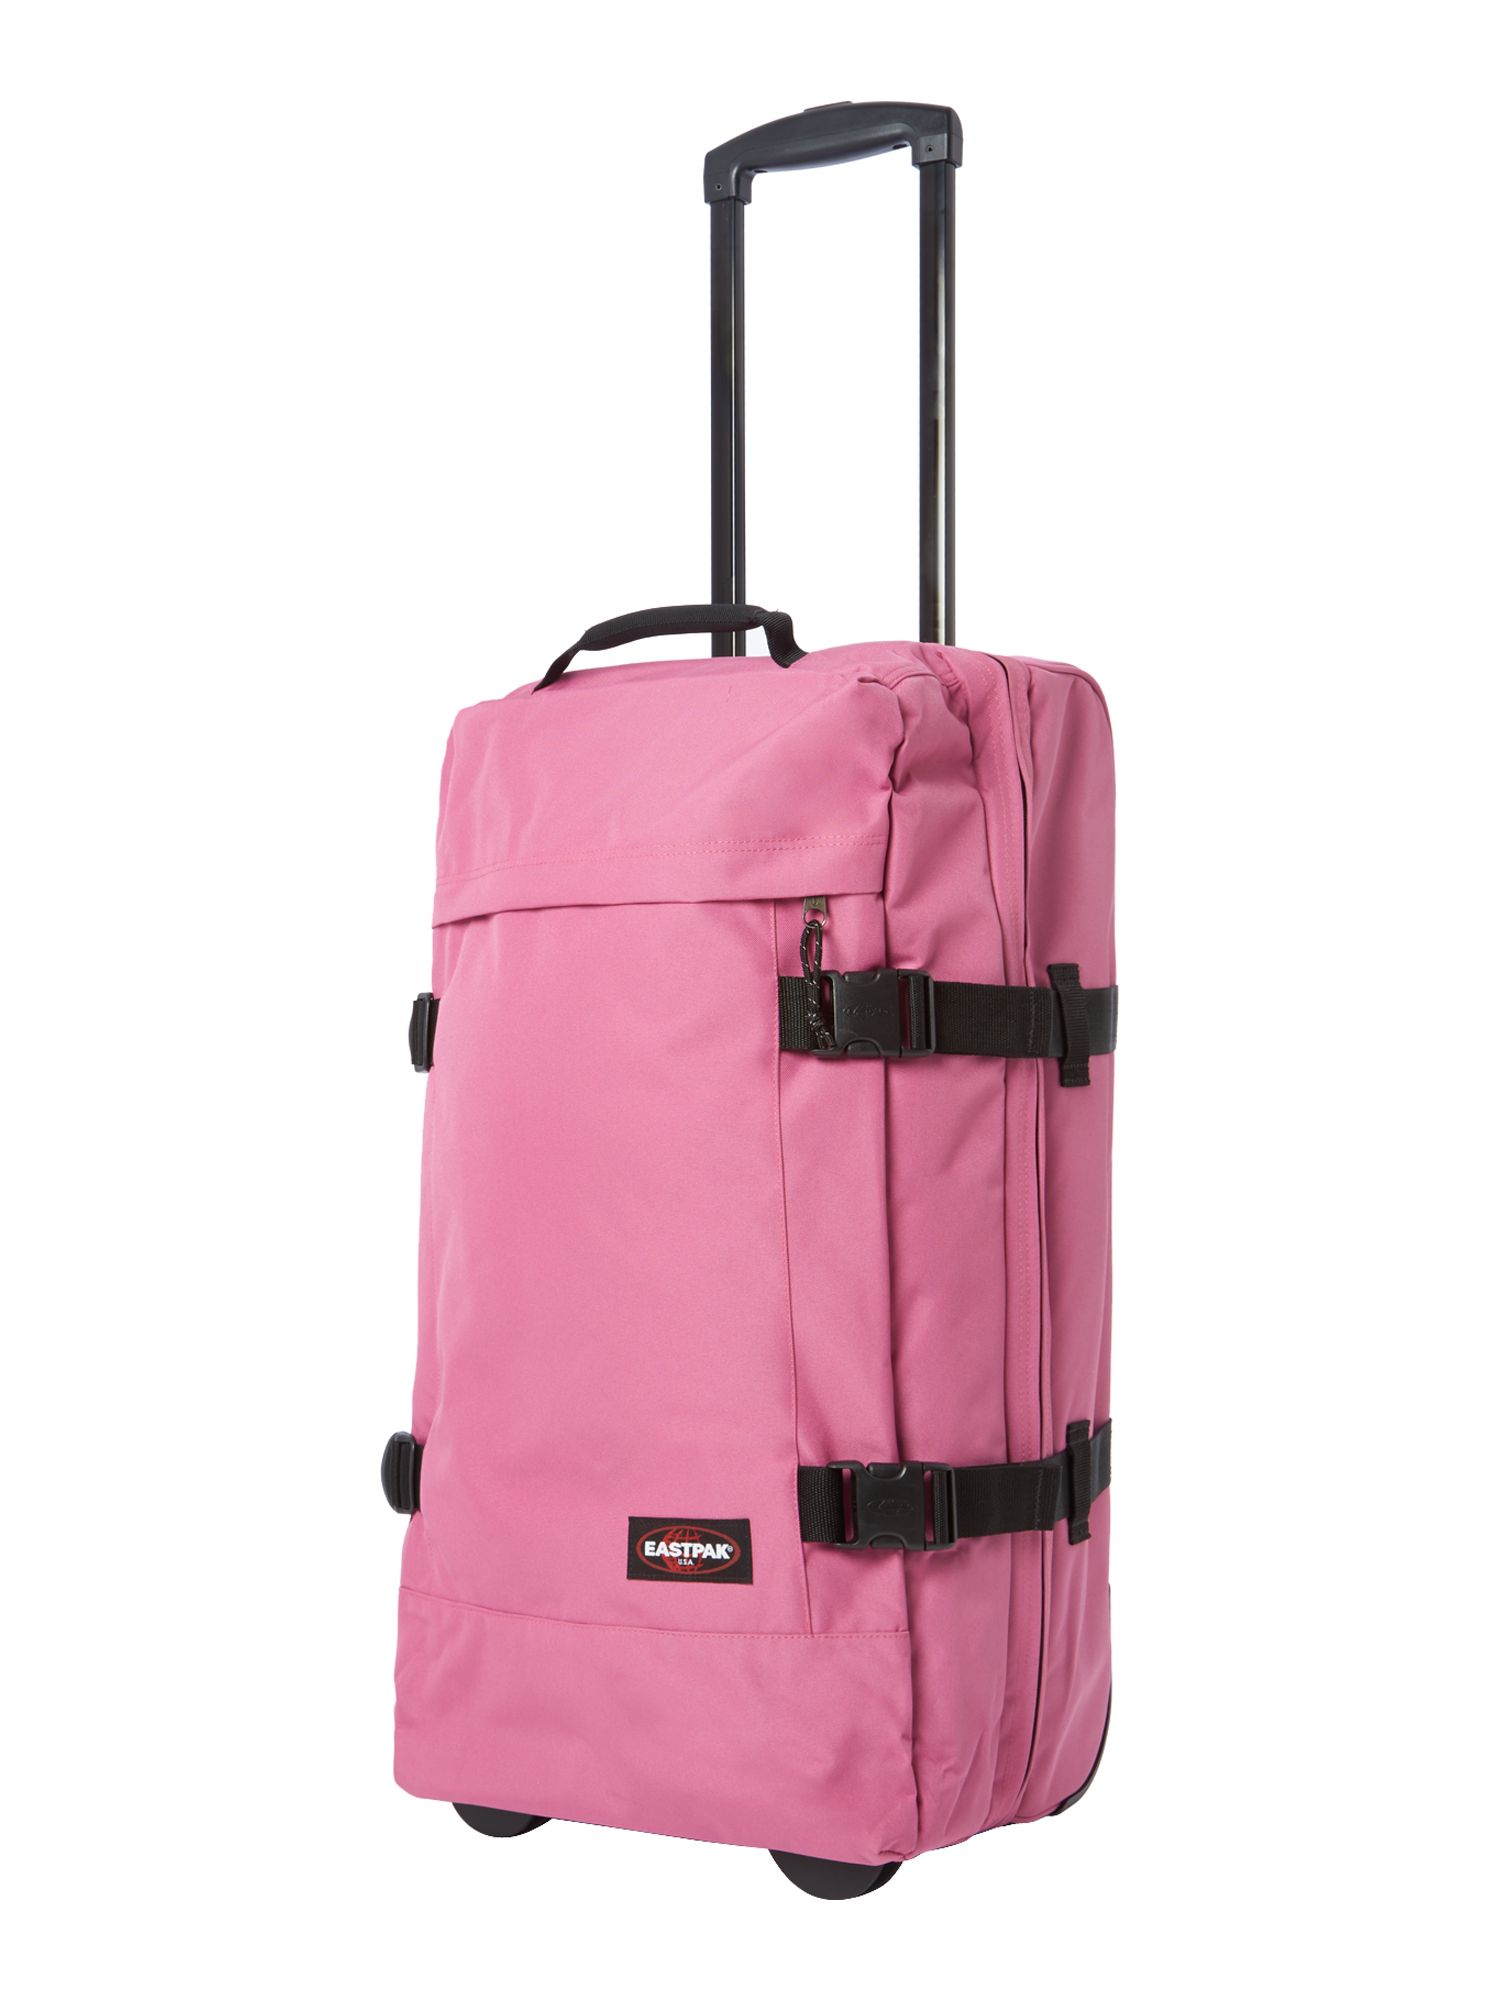 Transvers medium pink trolley duffle